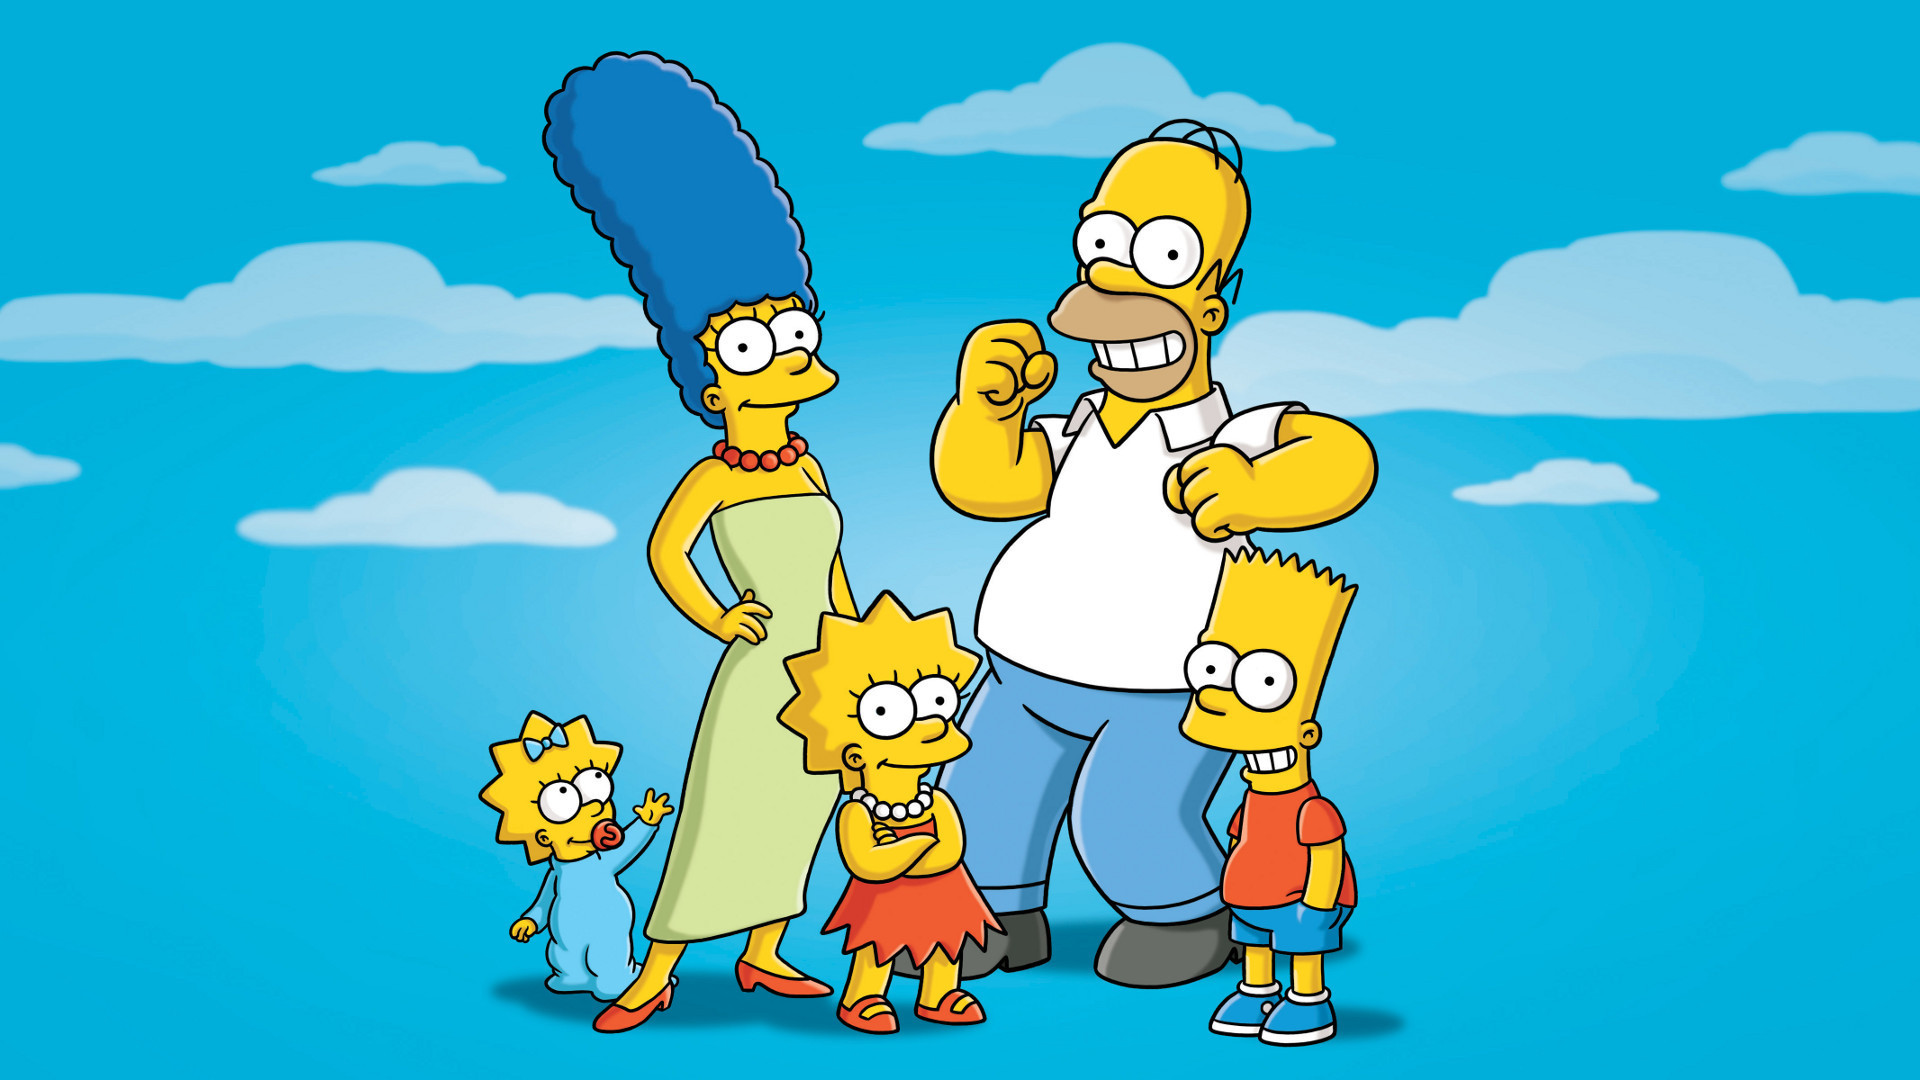 The Simpsons   Wallpaper High Definition High Quality Widescreen 1920x1080